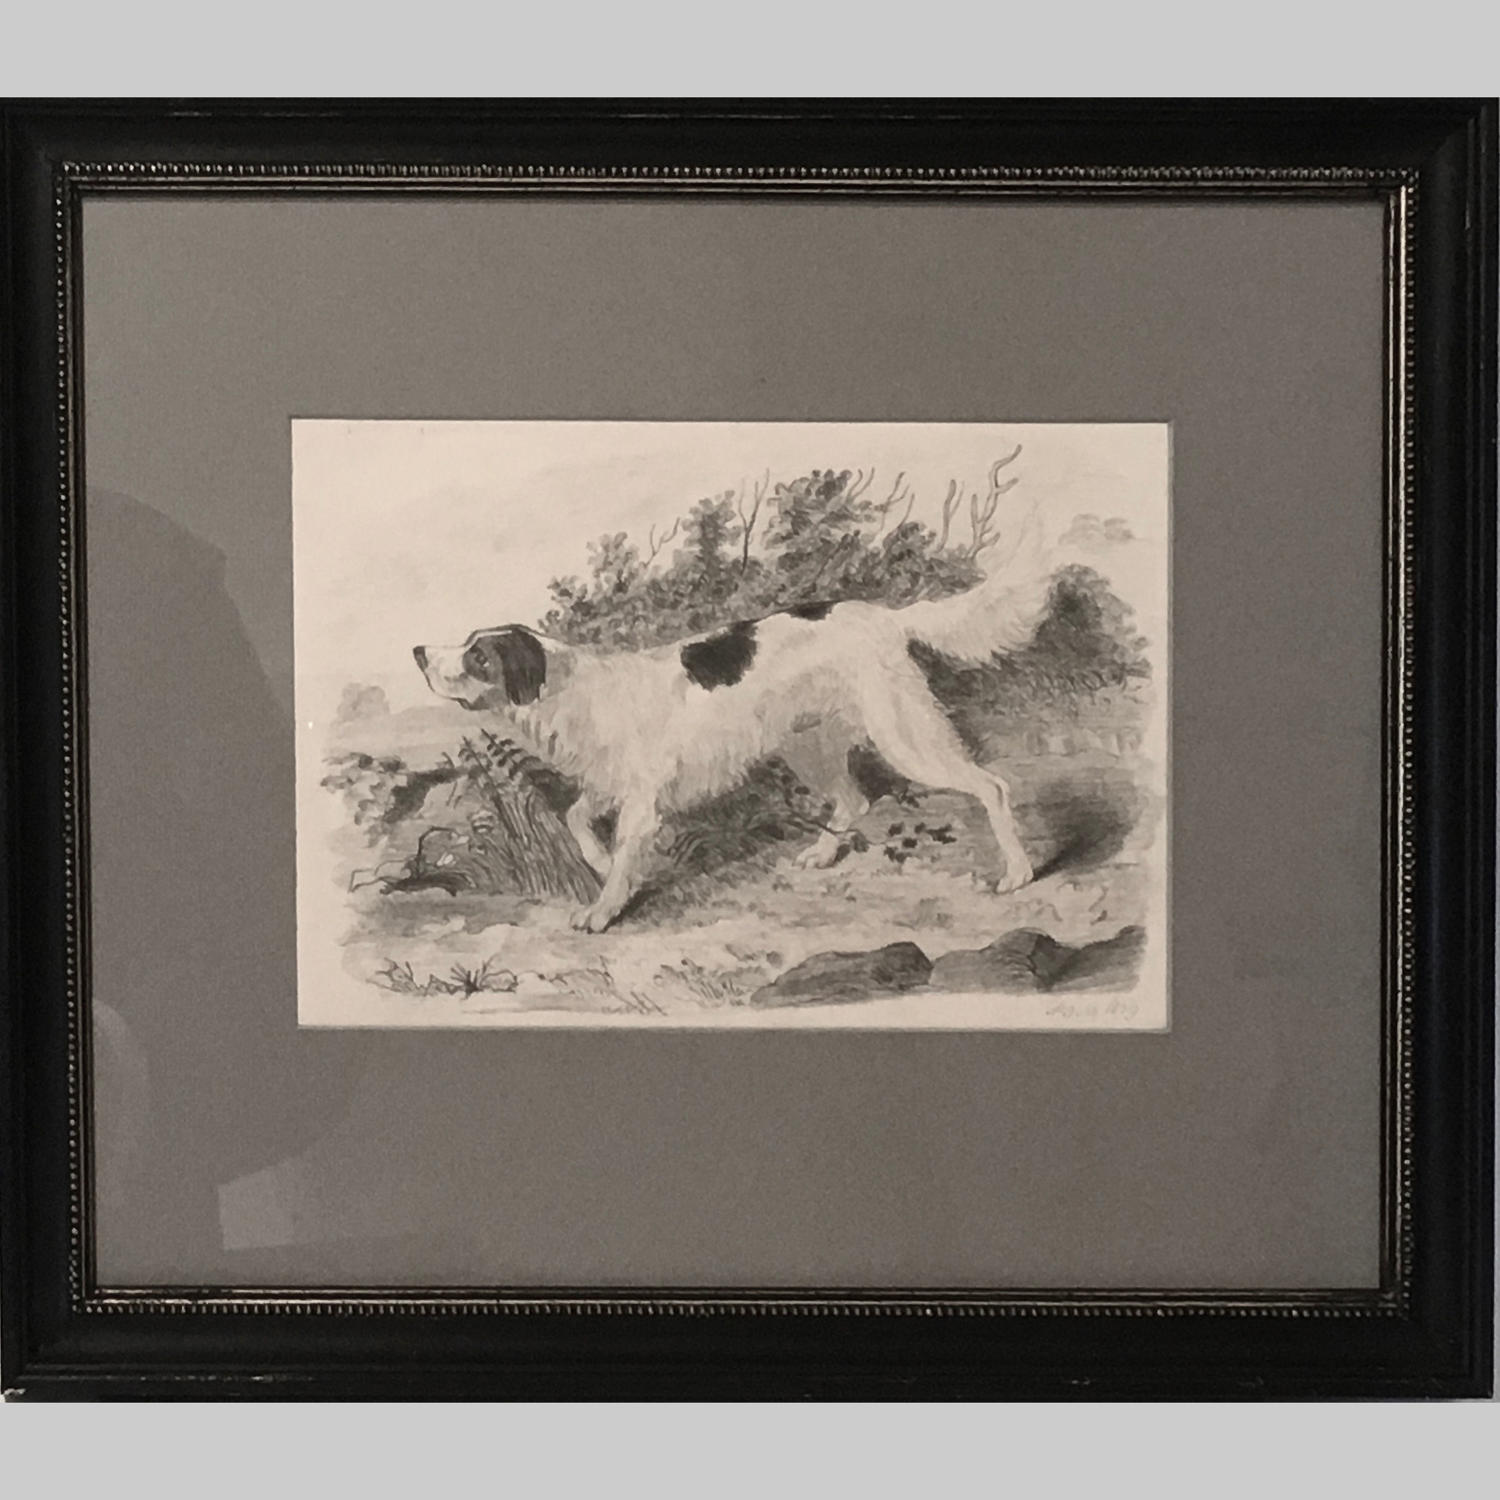 Drawing of an English setter by P.J.M. dated 1839